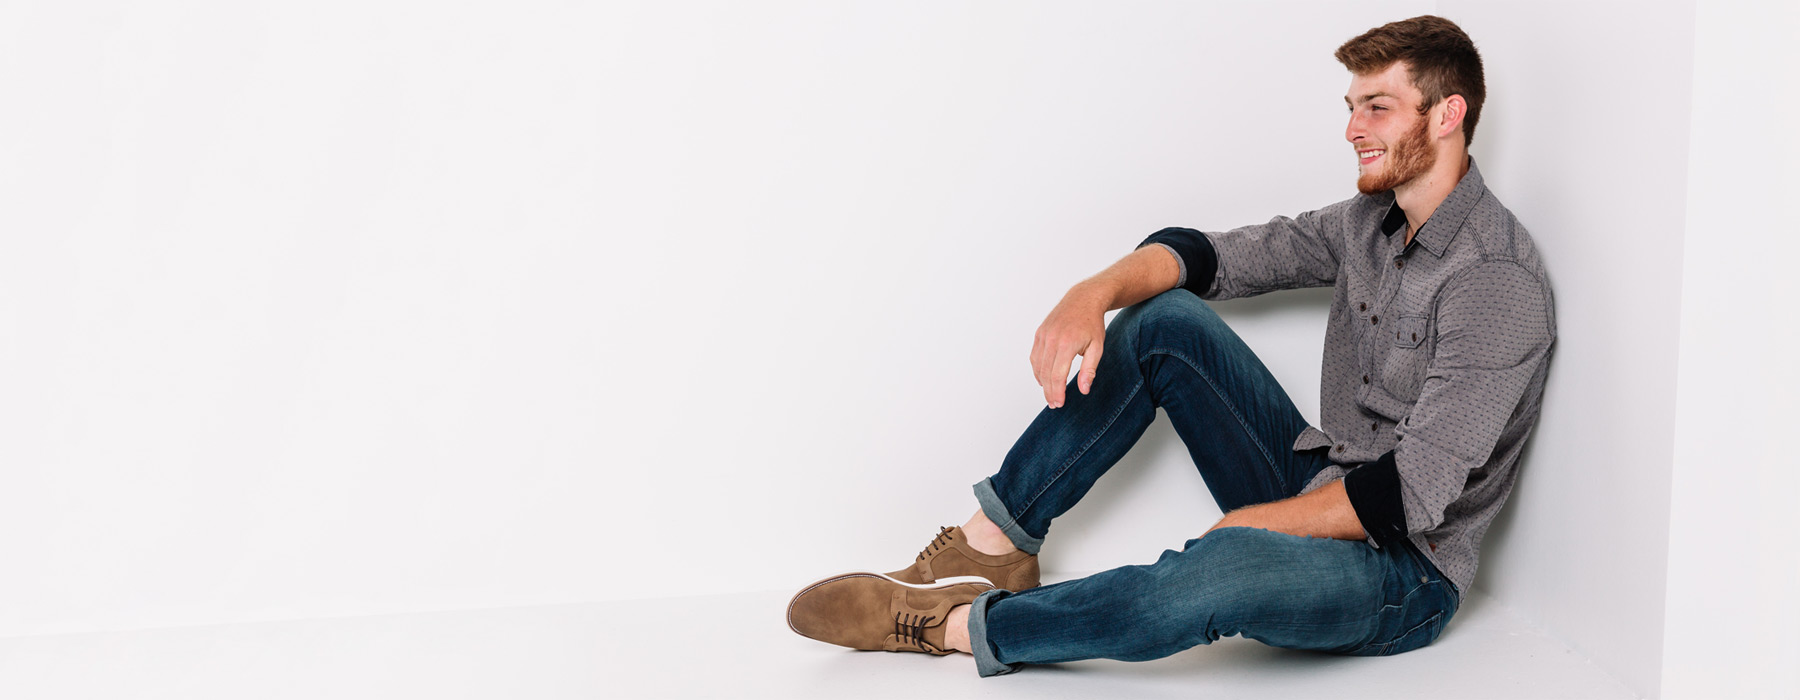 Guy sitting against white wall with hand on his knee, wearing dark wash denim from Buckle.